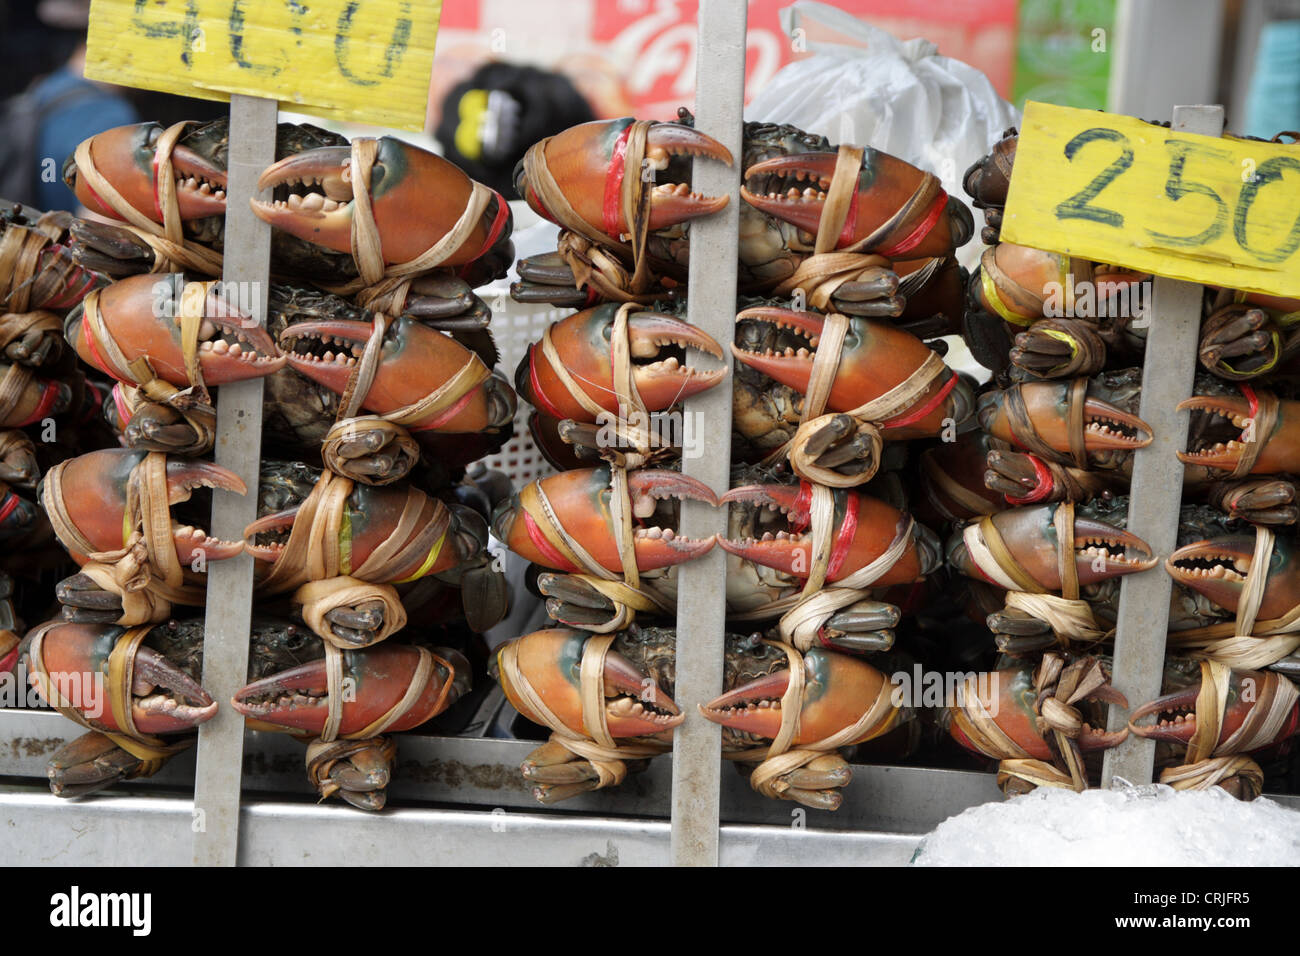 Crabs on sale - Stock Image